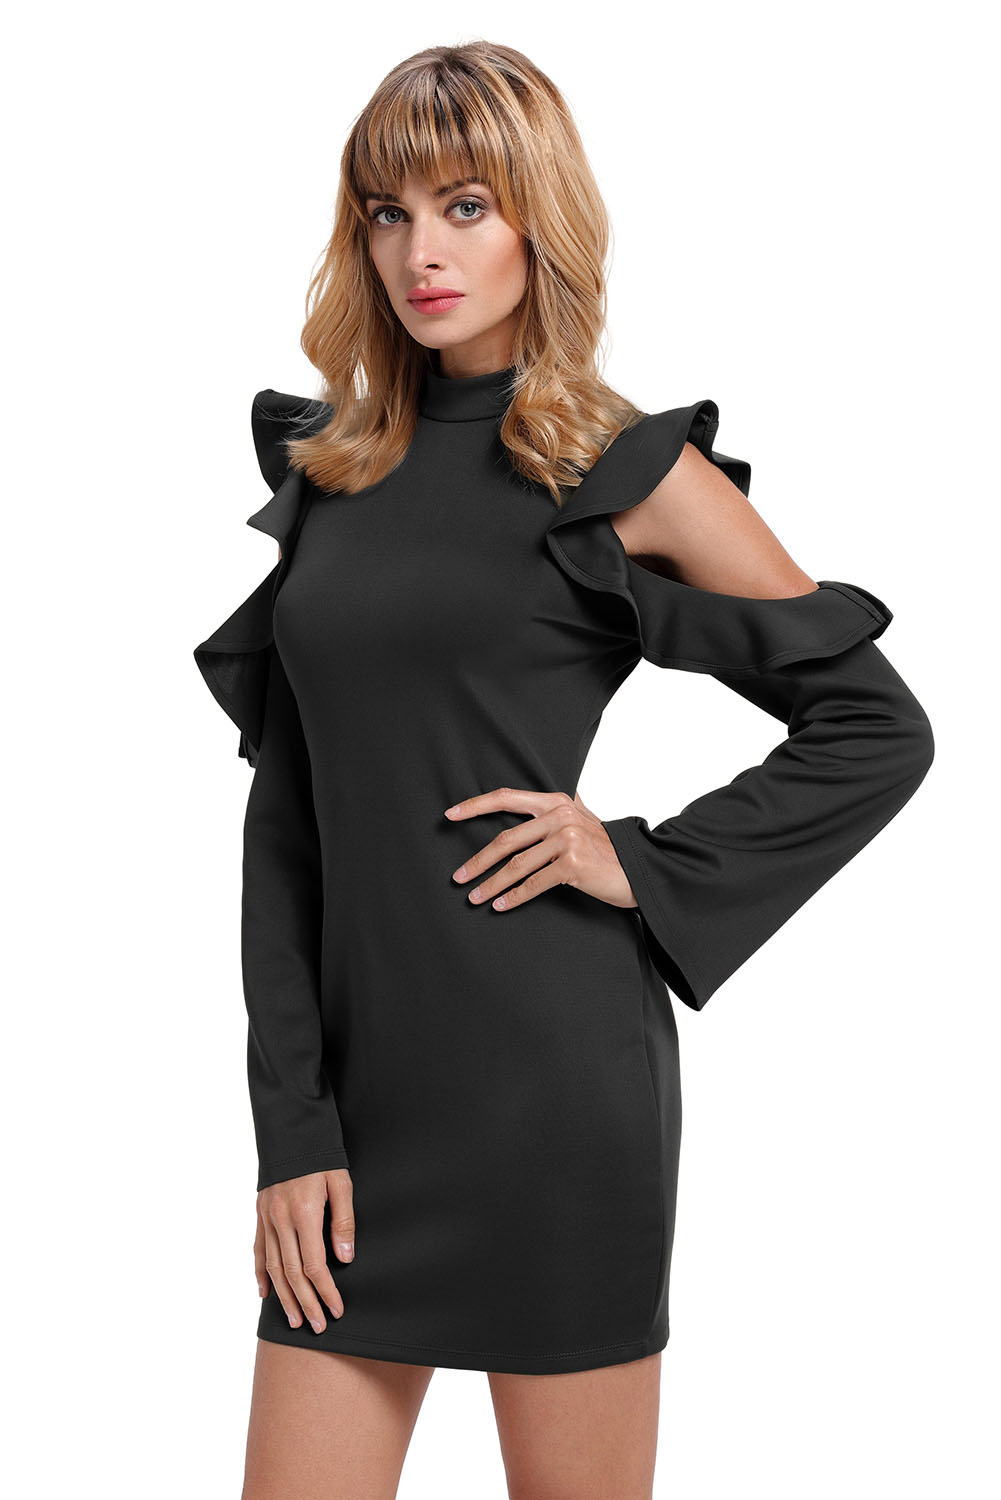 BY220150-2 Black Cold Shoulder Ruffle Long Sleeve Bodycon Dress